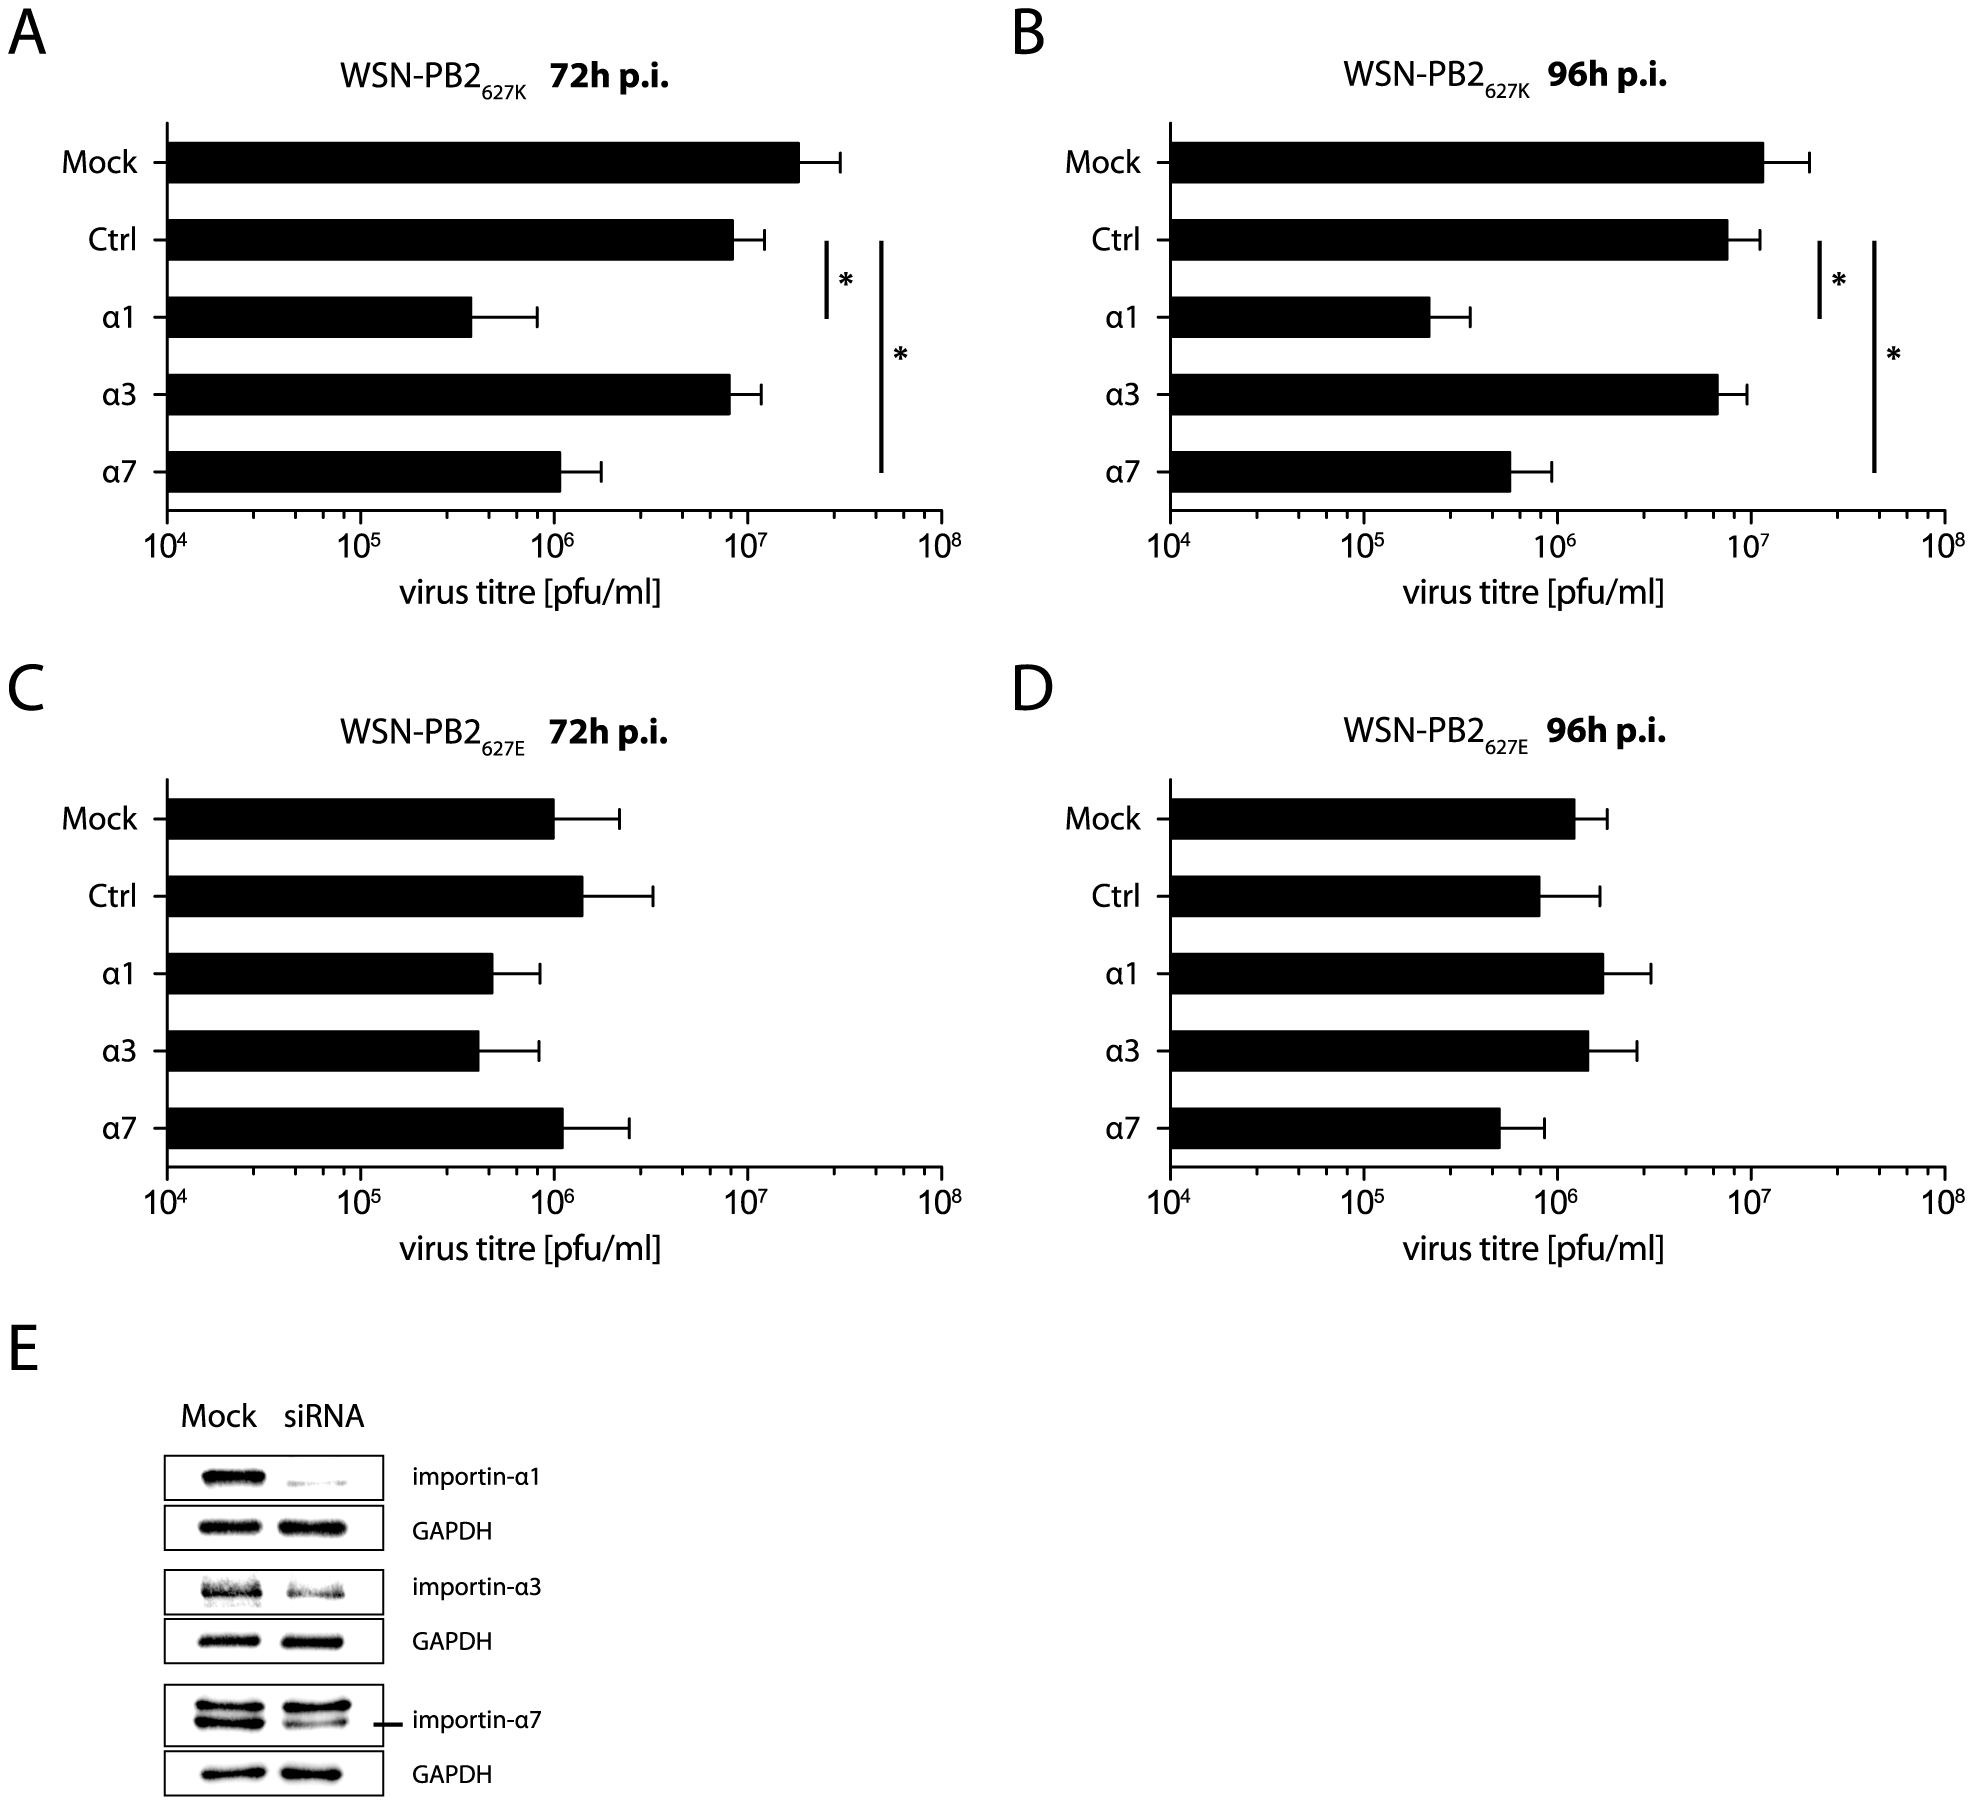 Human- but not avian-like virus growth depends on importin-α1 and -α7.